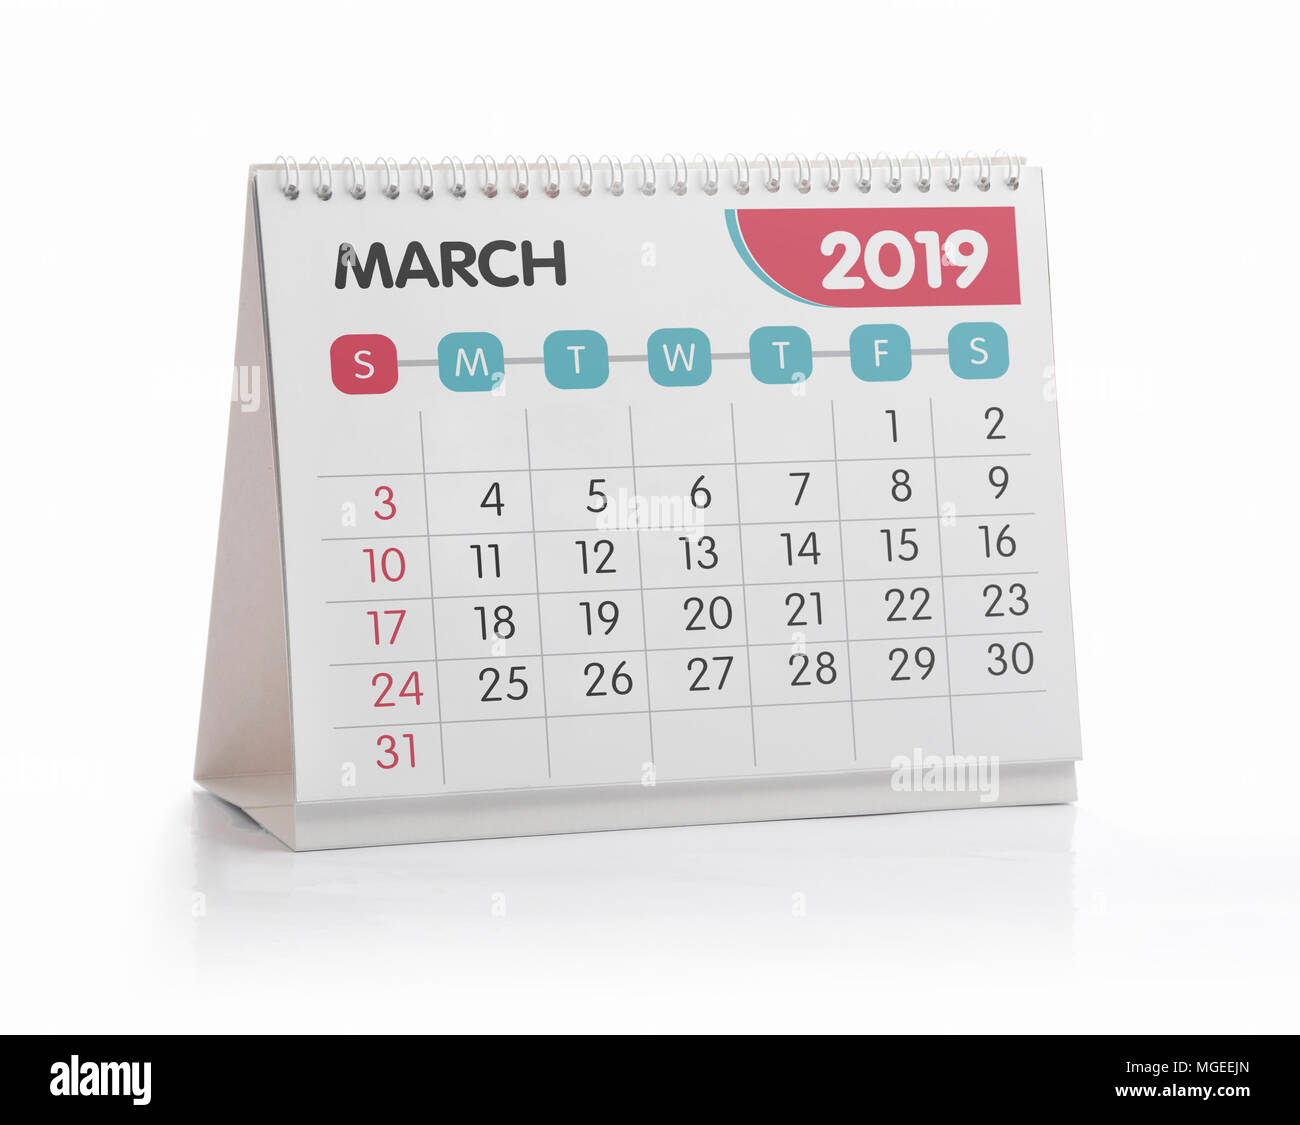 March White Office Calendar 2019 Isolated on White - Stock Image